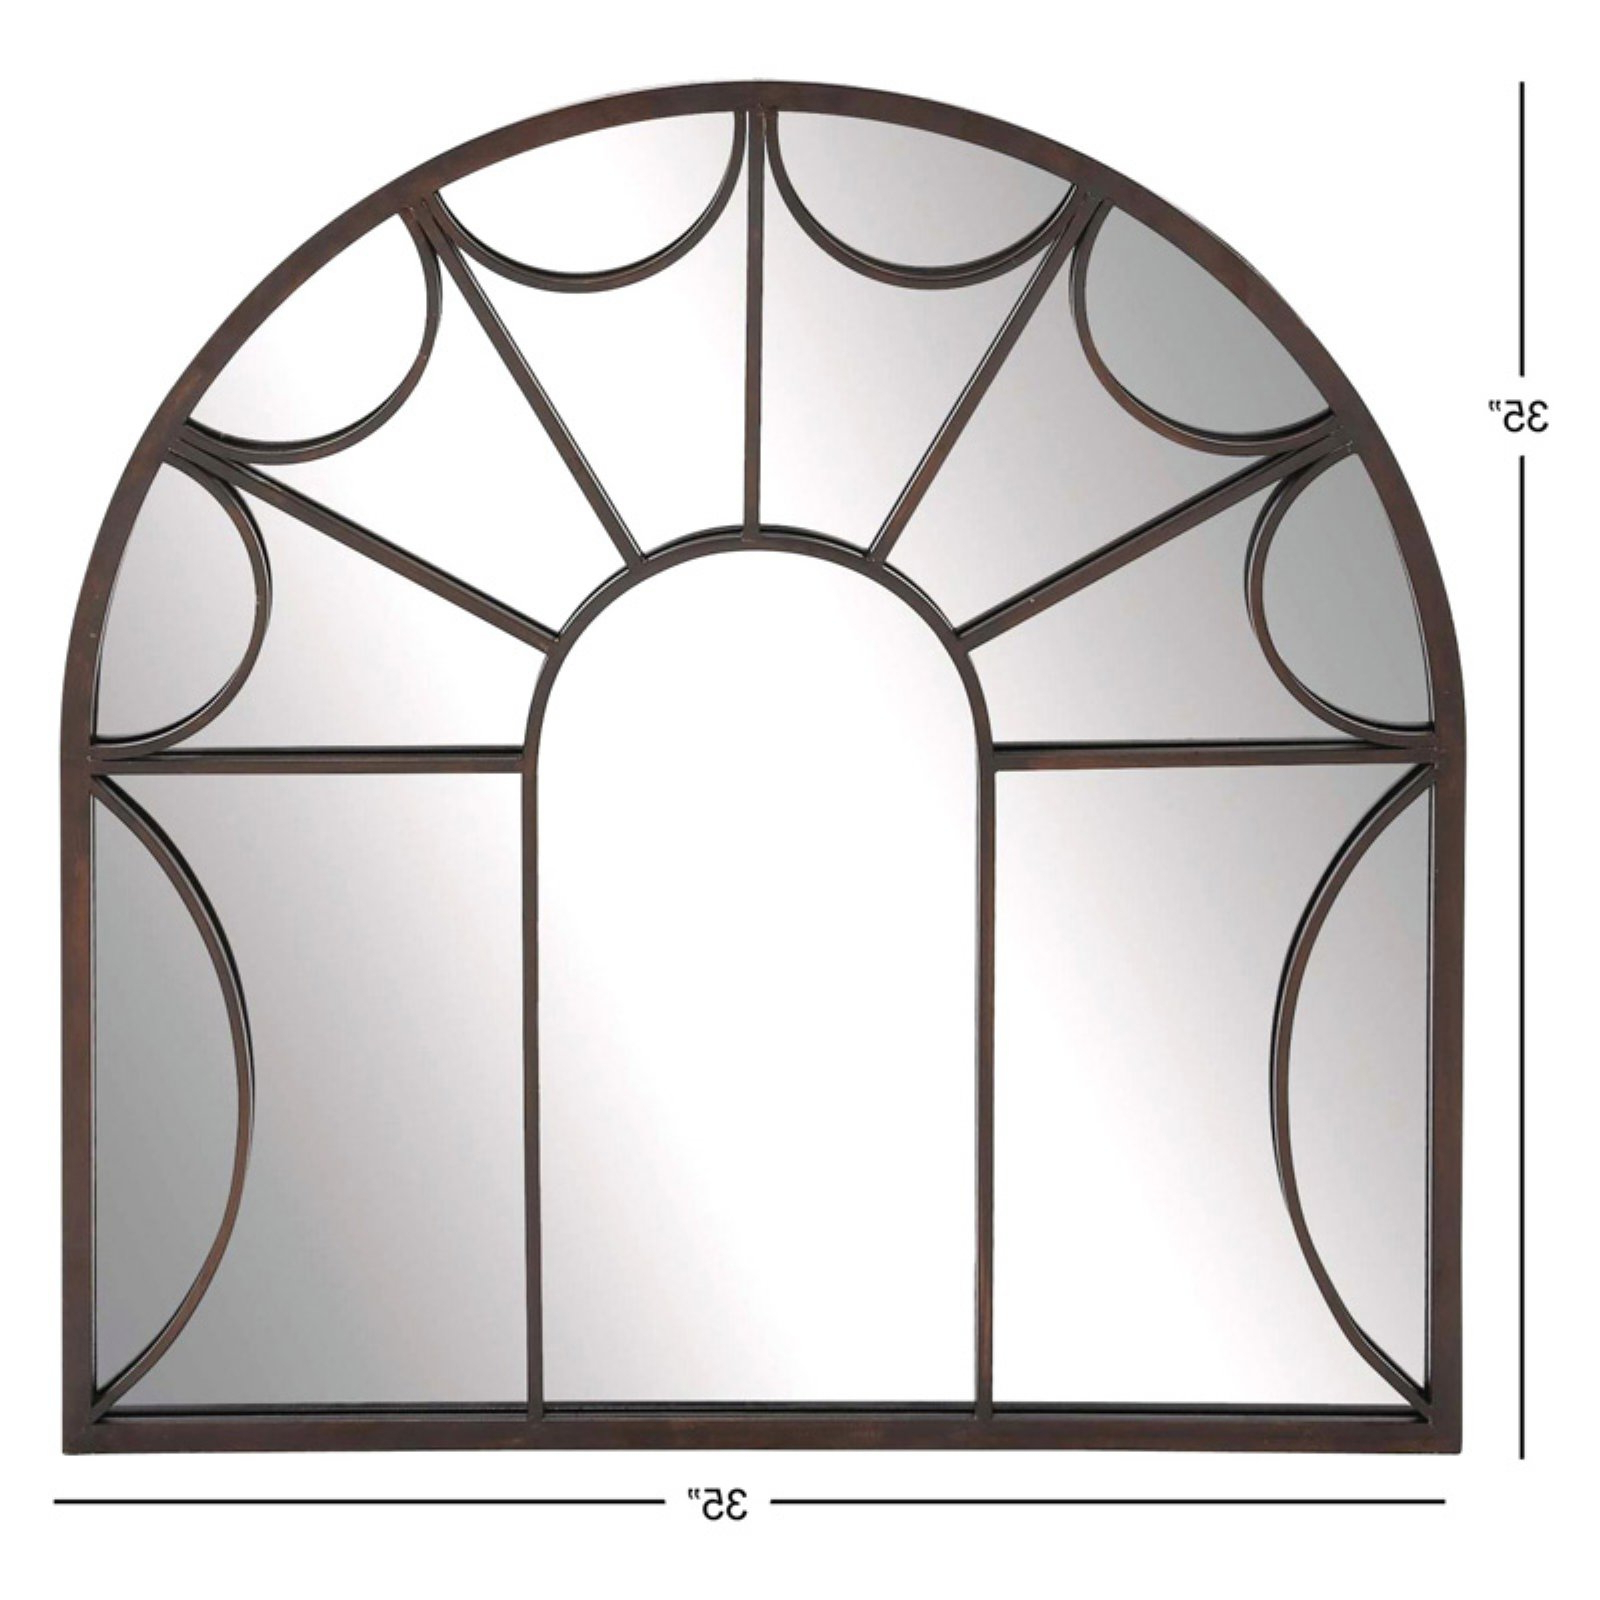 Traditional Metal Wall Mirrors With Regard To Popular Decmode Metal Wall Mirror, Black (View 17 of 20)